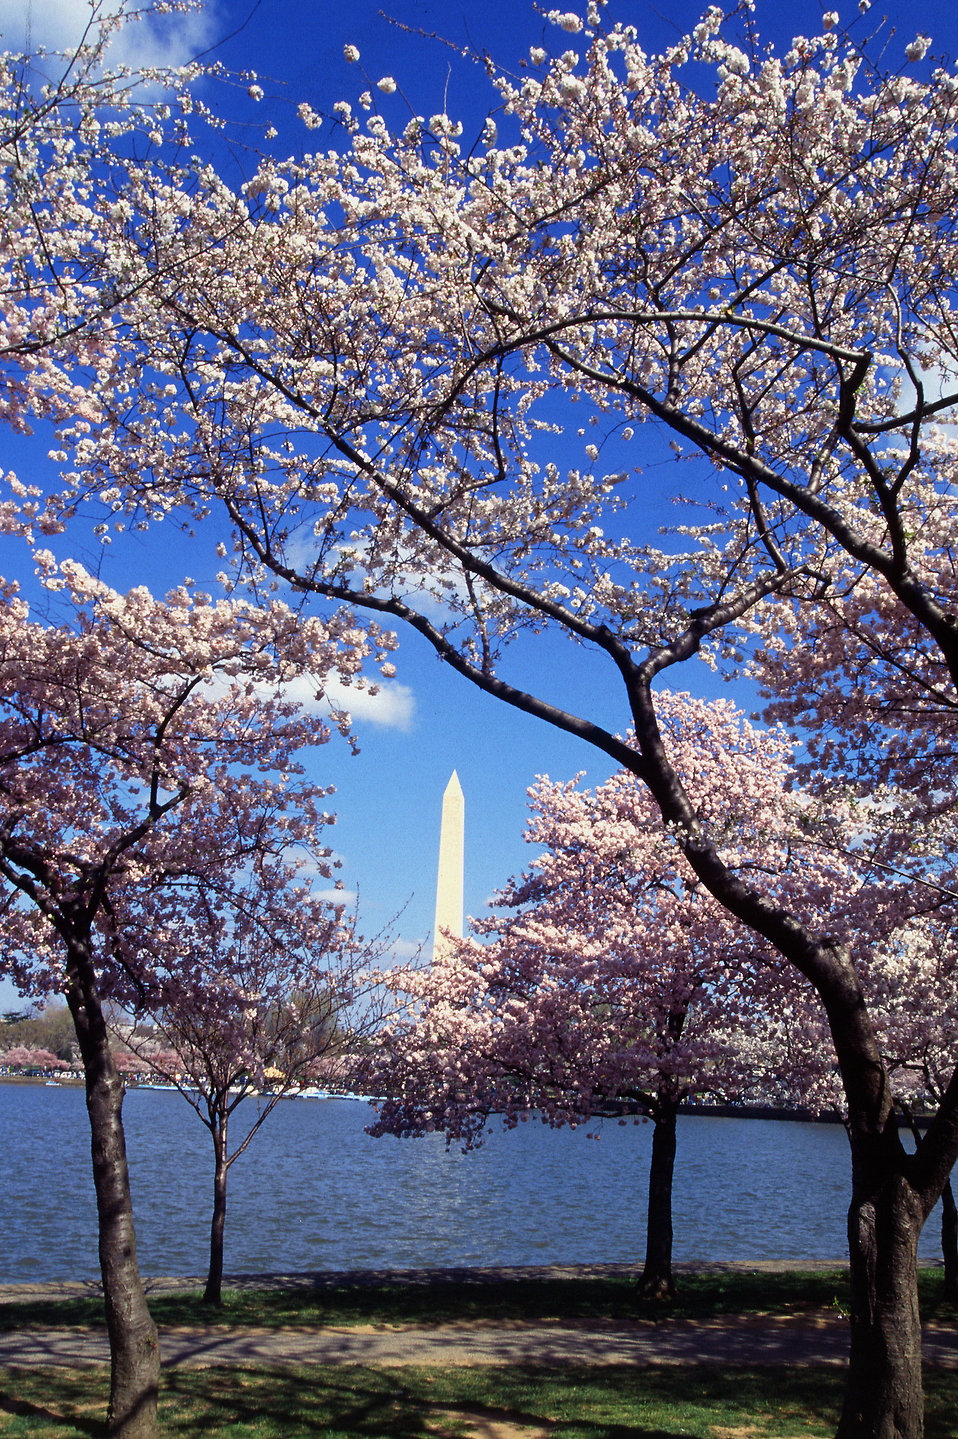 Resplendent cherry trees from Japan ring the Tidal Basin at Washington, D.C. : Free Stock Photo